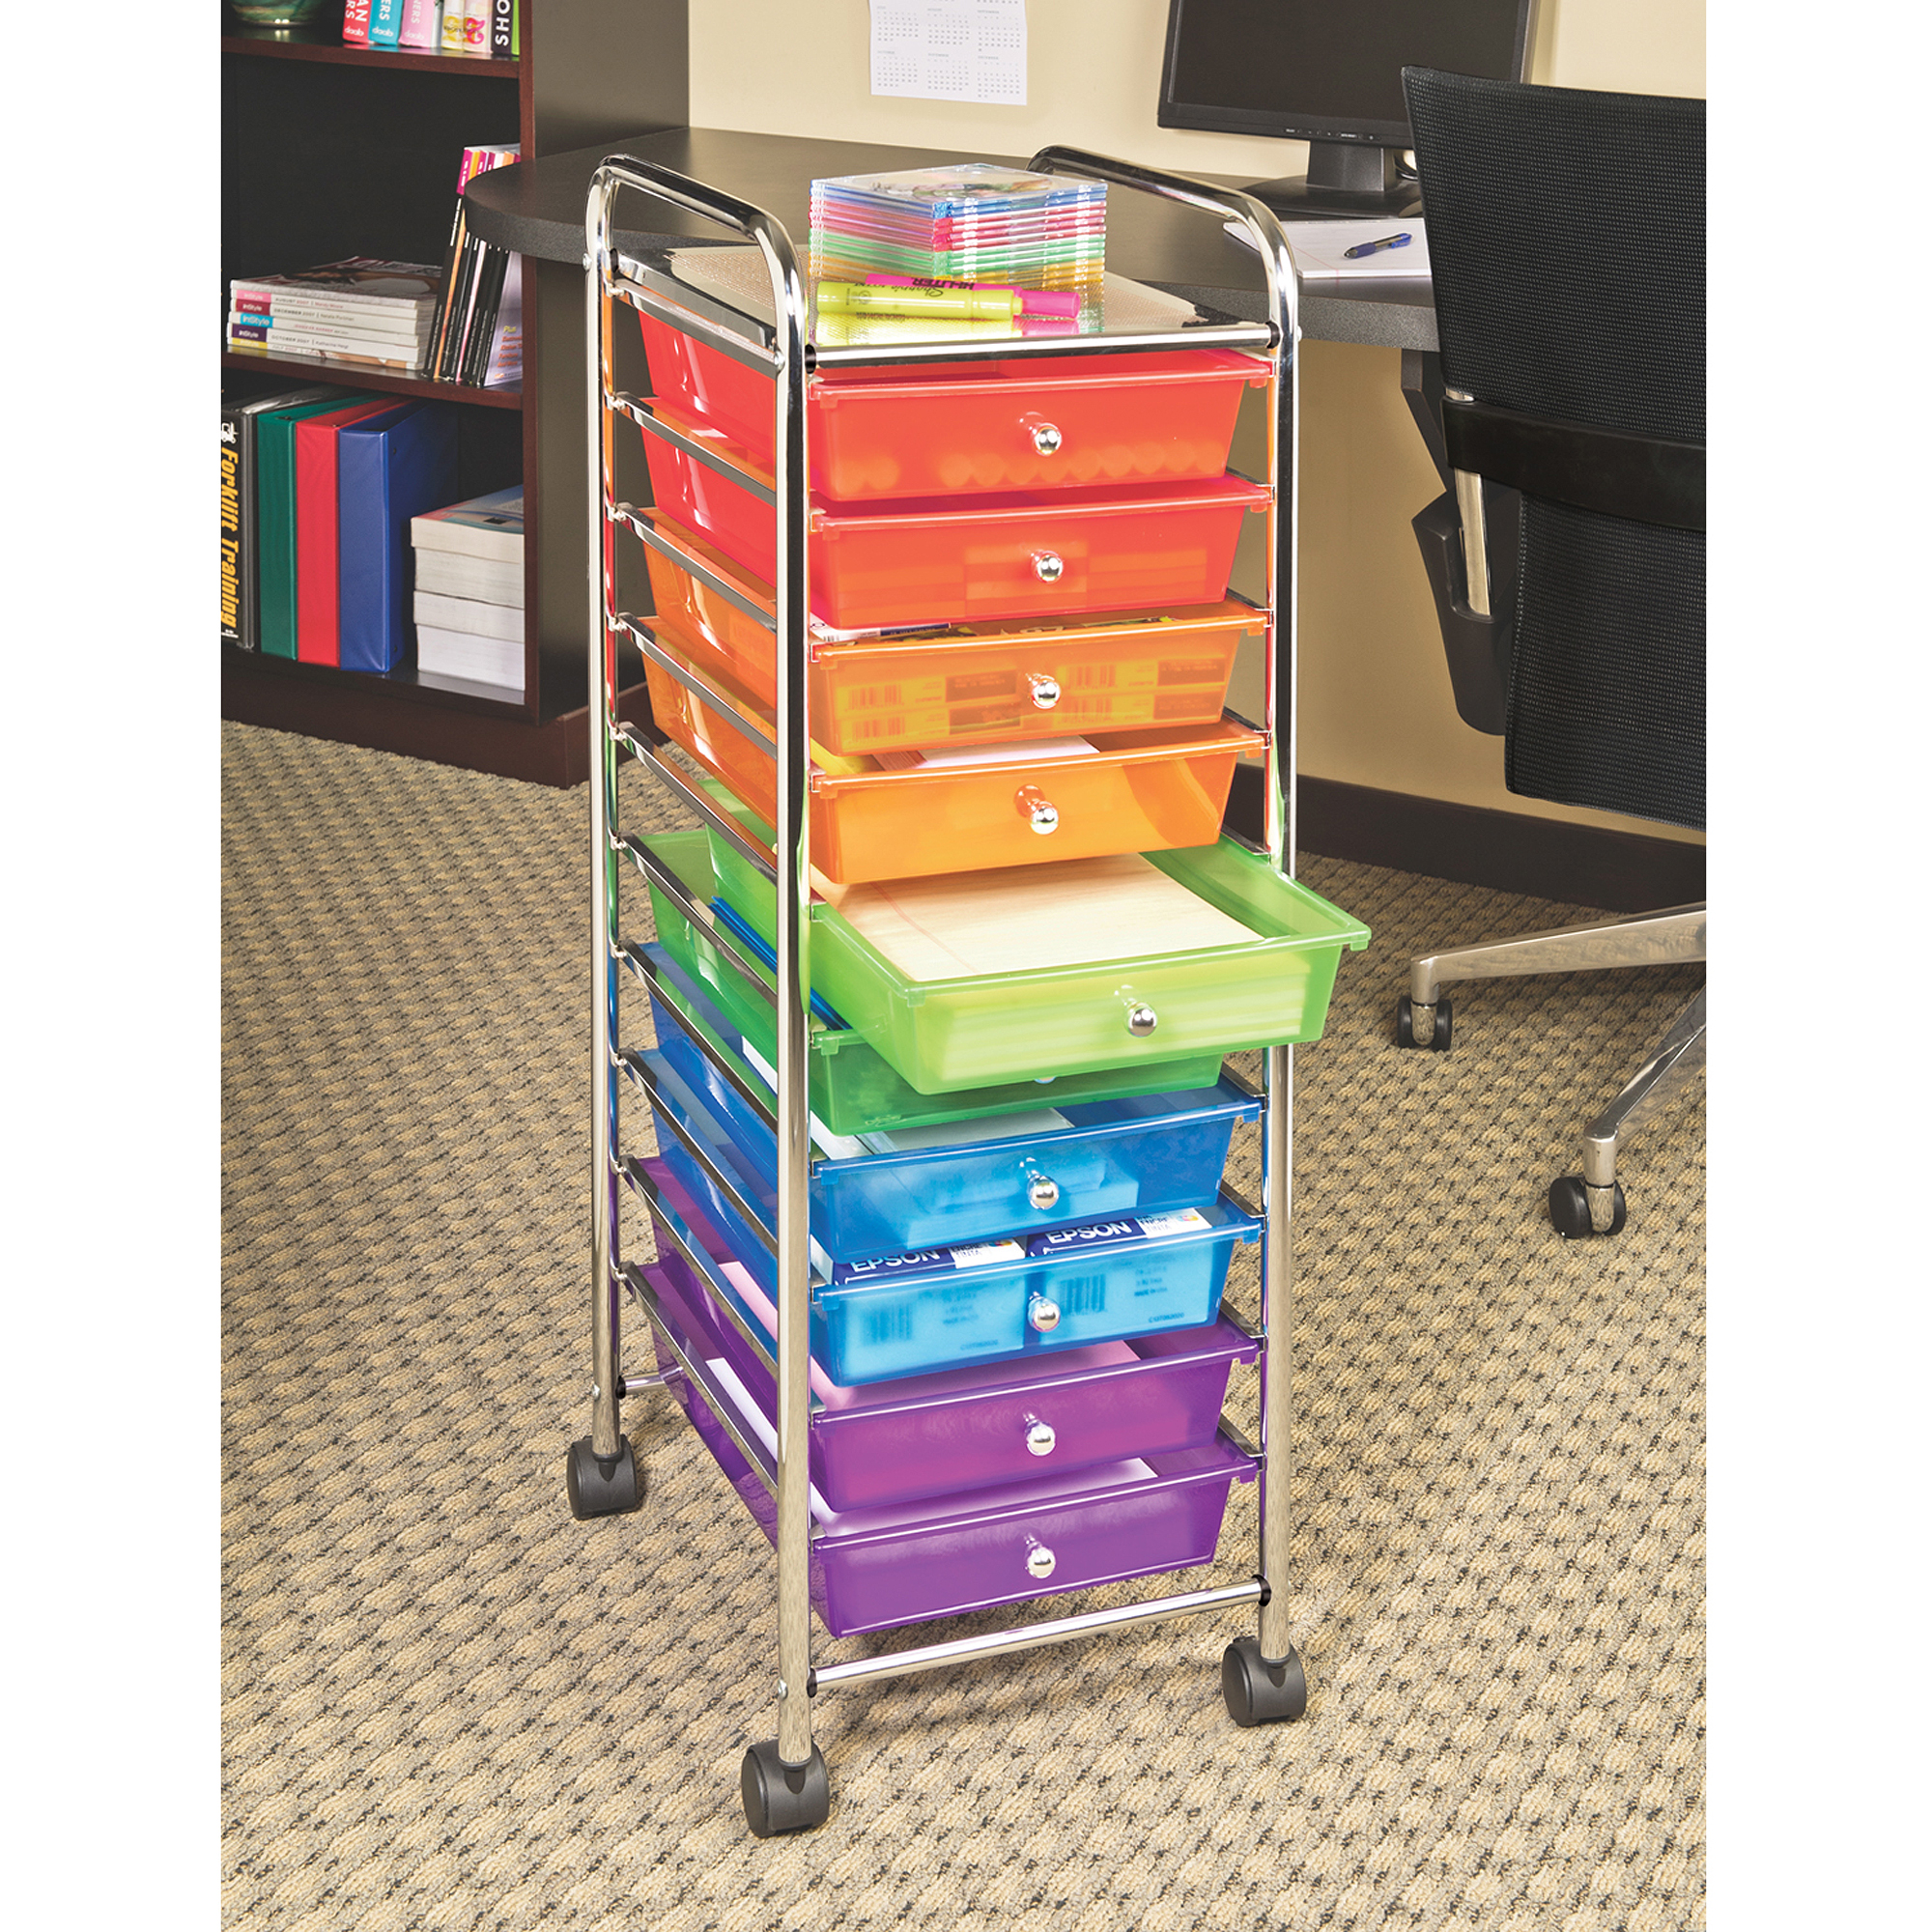 10 Drawer Organizer Cart W/ Wheels, Pearl Multi Color By Seville Classics    Walmart.com